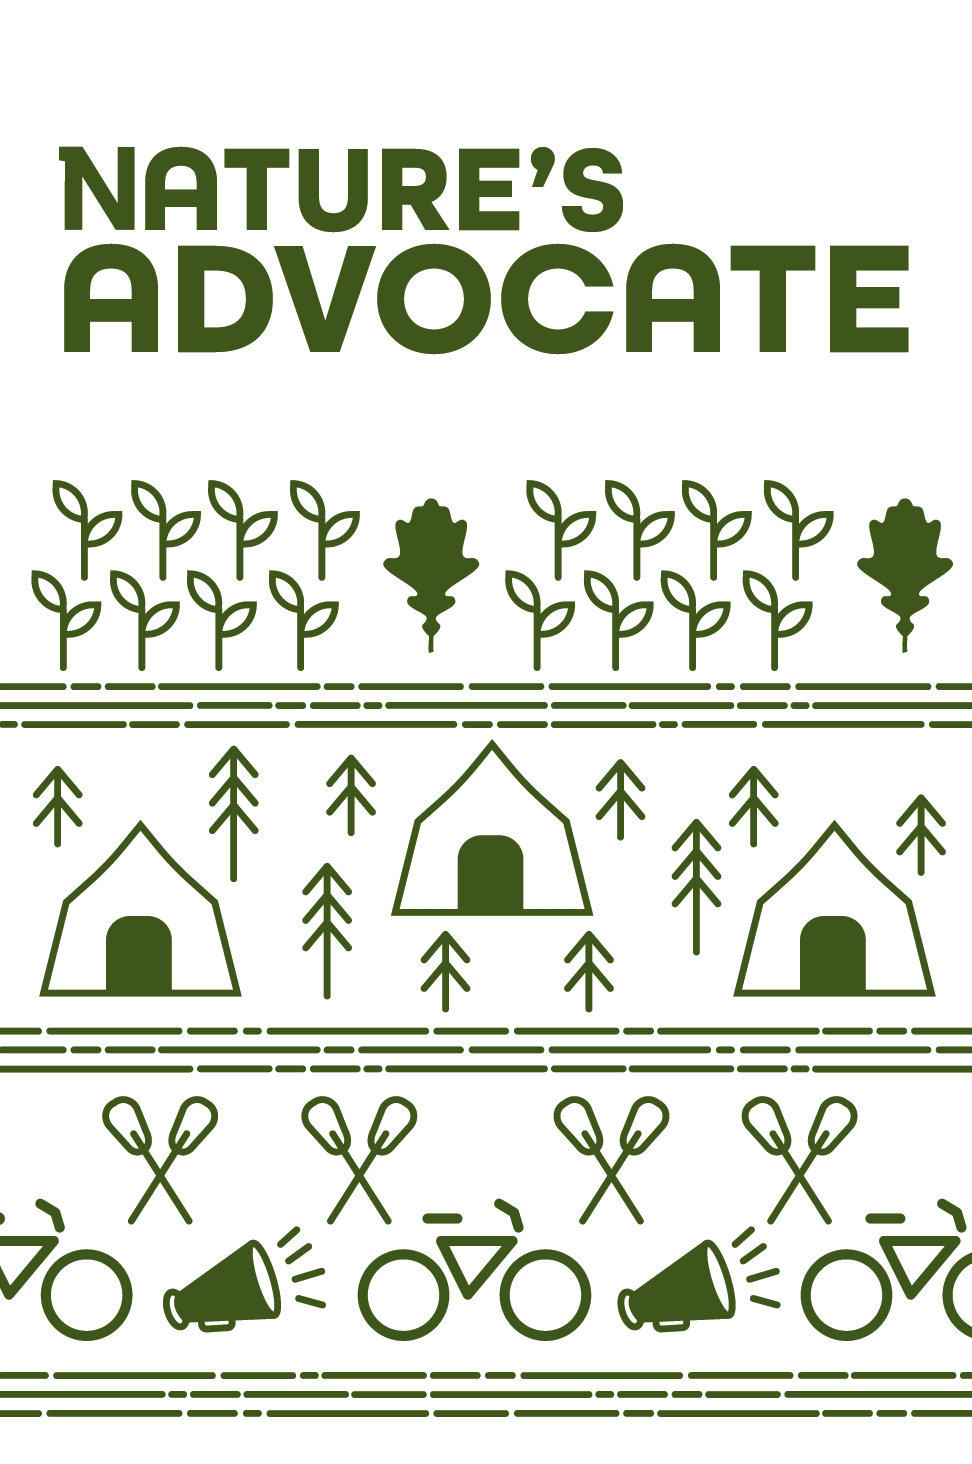 Nature's Advocate booklet cover